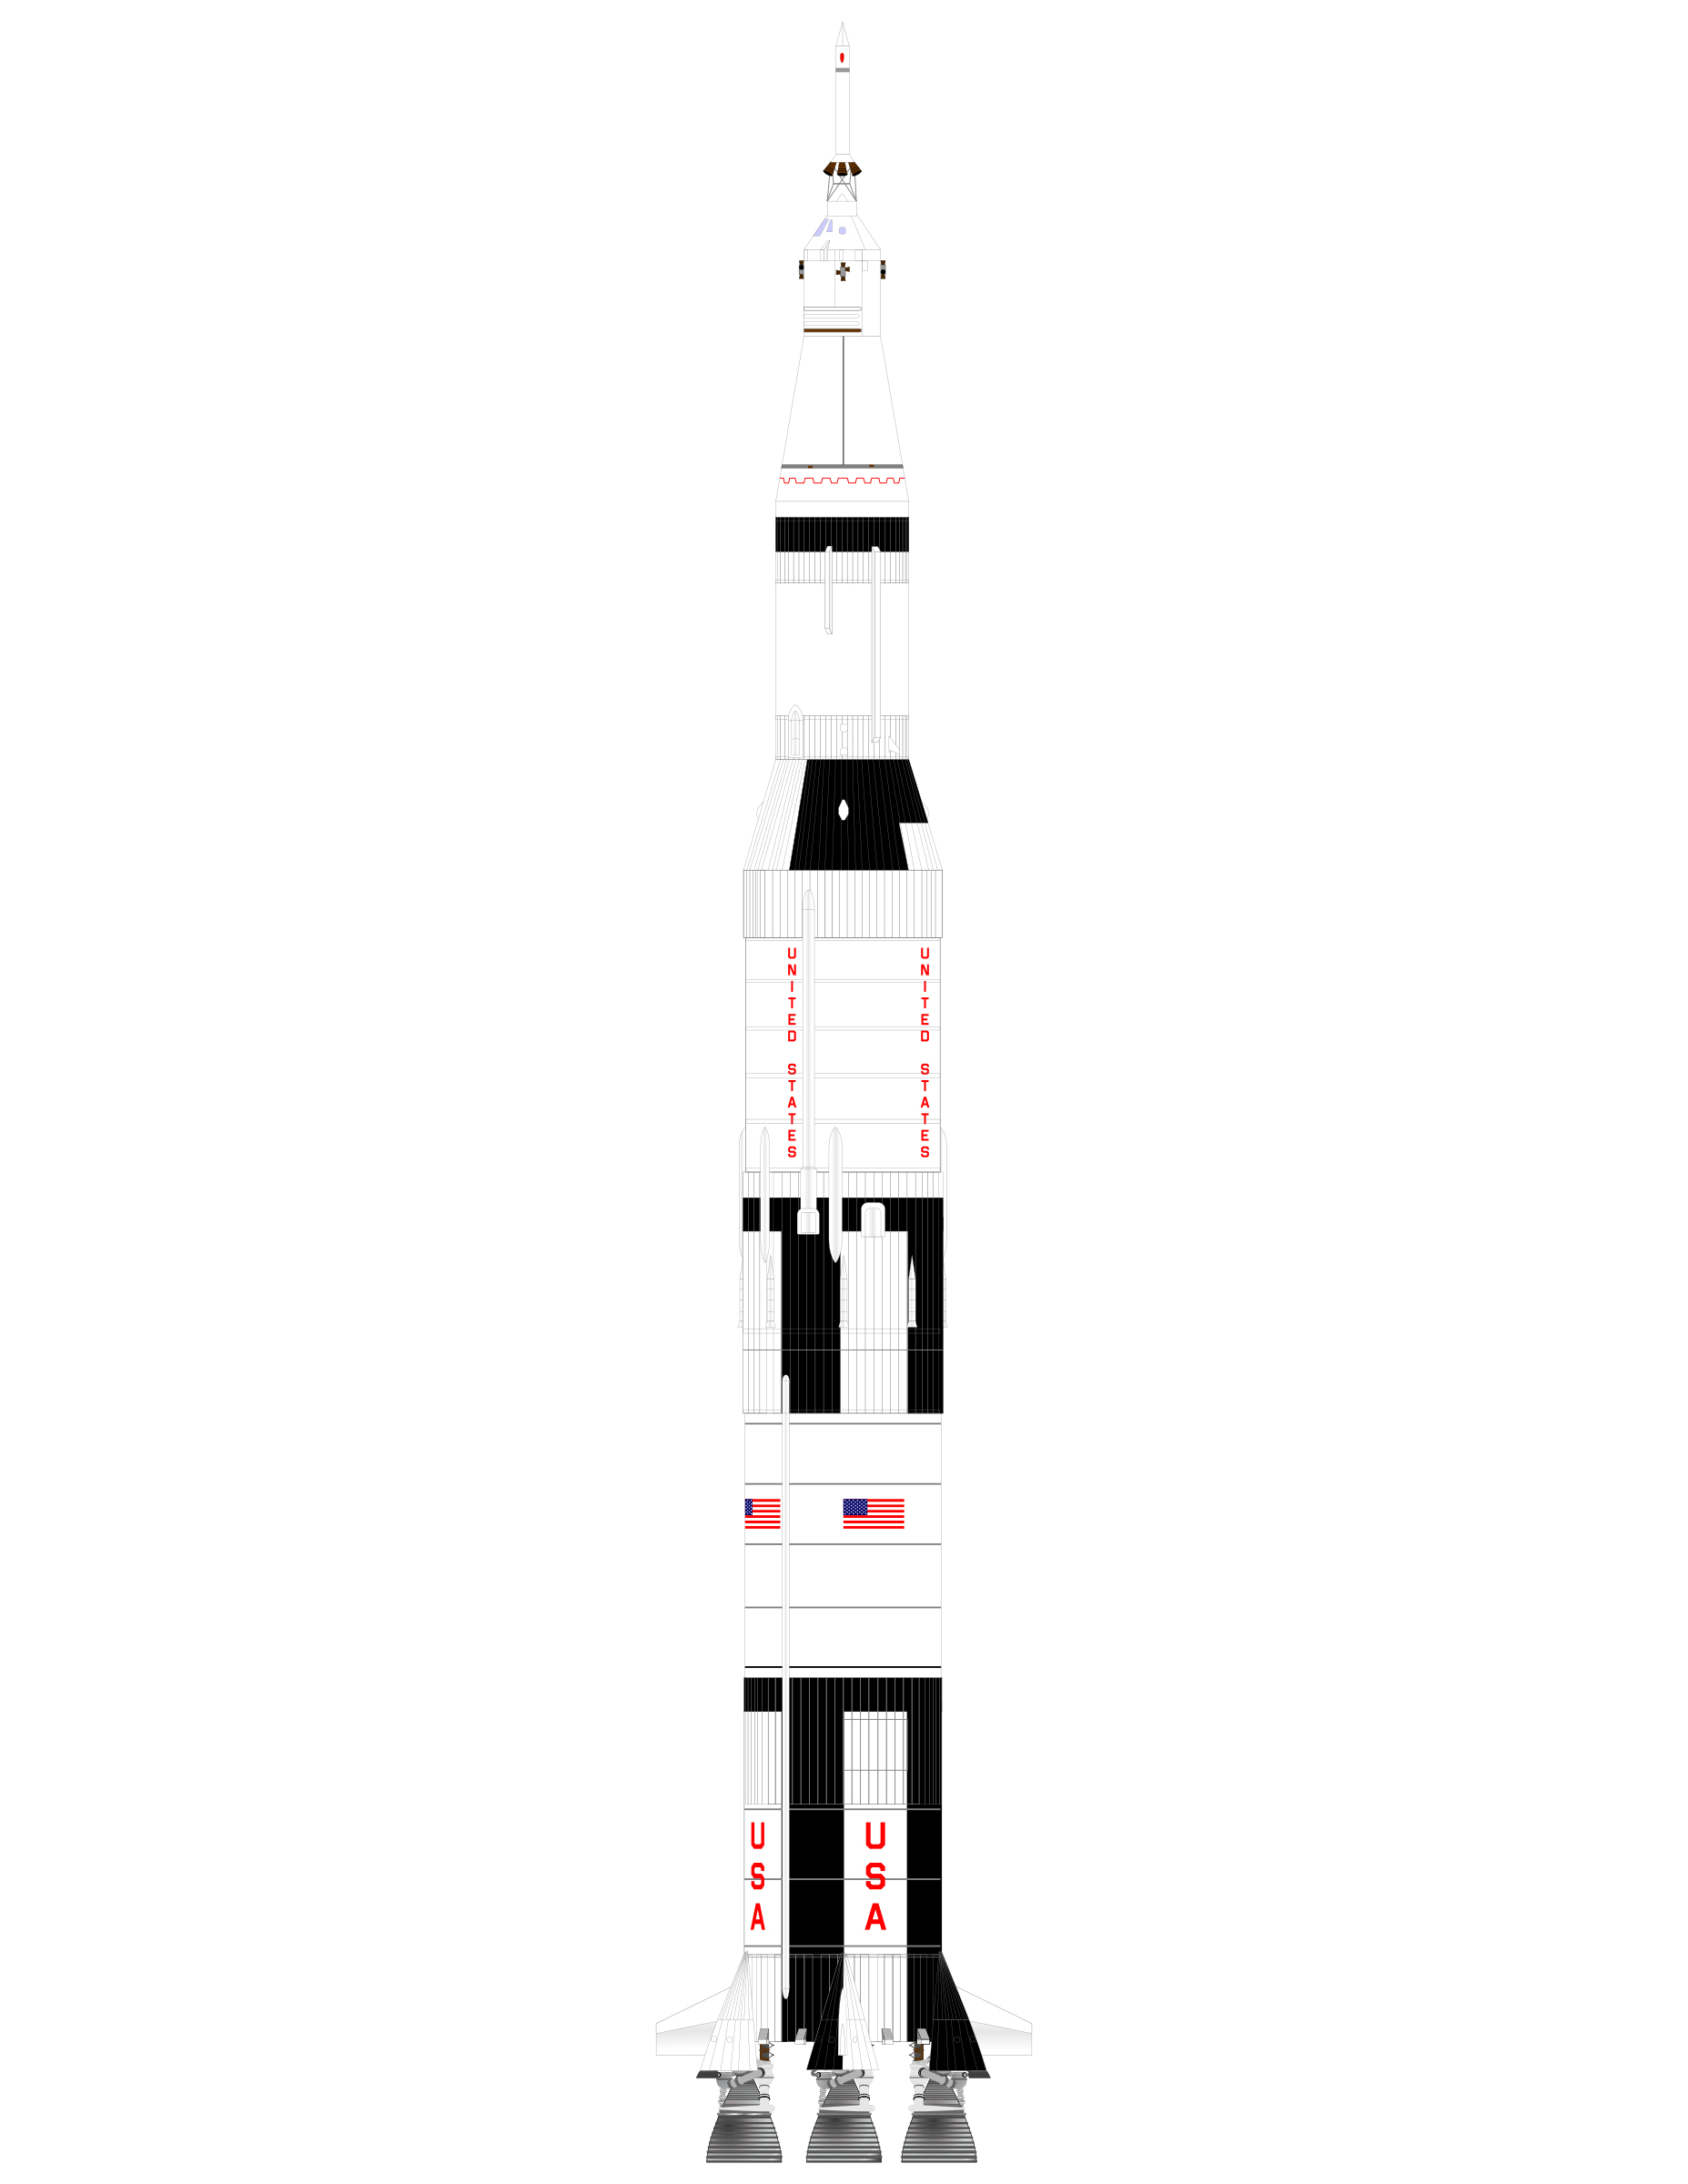 Rocket saturn v big. Spaceship clipart apollo spacecraft